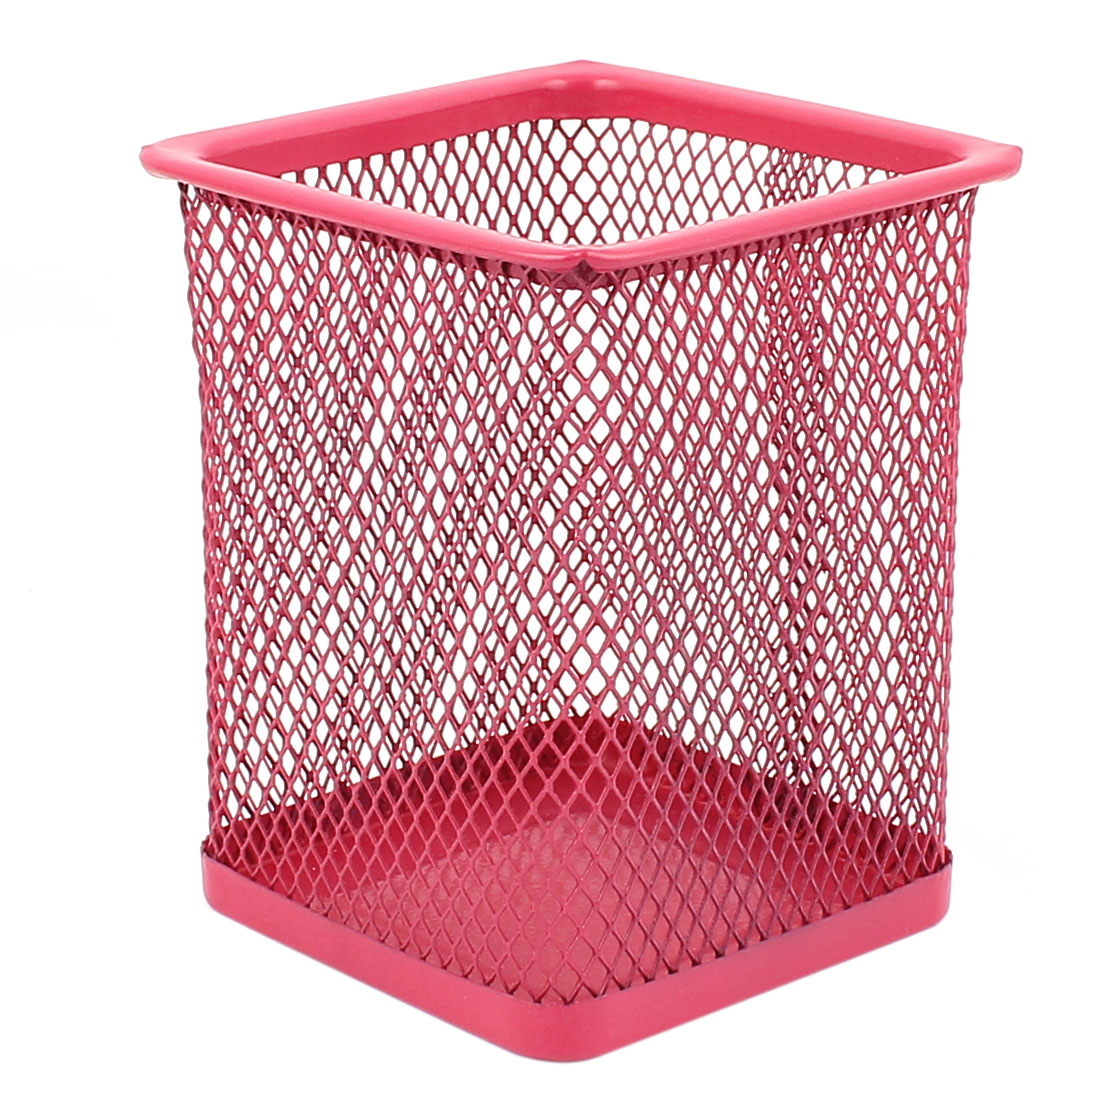 Office School Metal Mesh Cuboid Design Pen Pencils Holder Storage Box Red